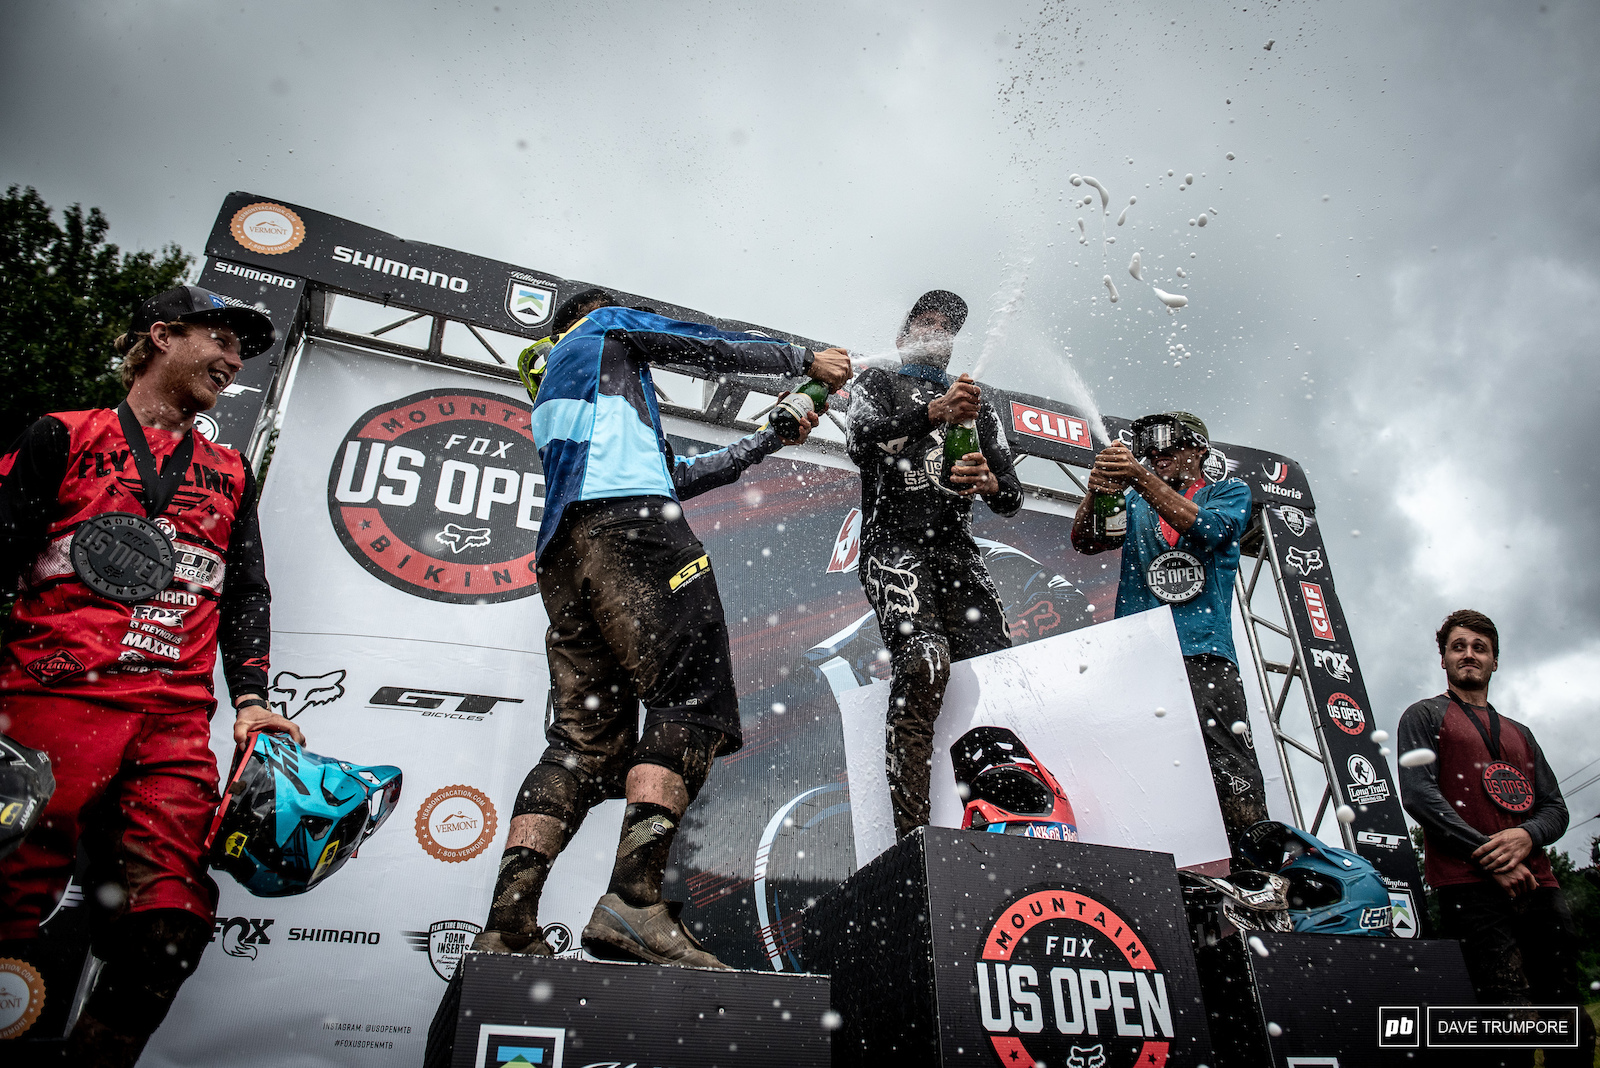 Neko Mulally made it back to back US Open titles just one week after also clinching the national championship title.